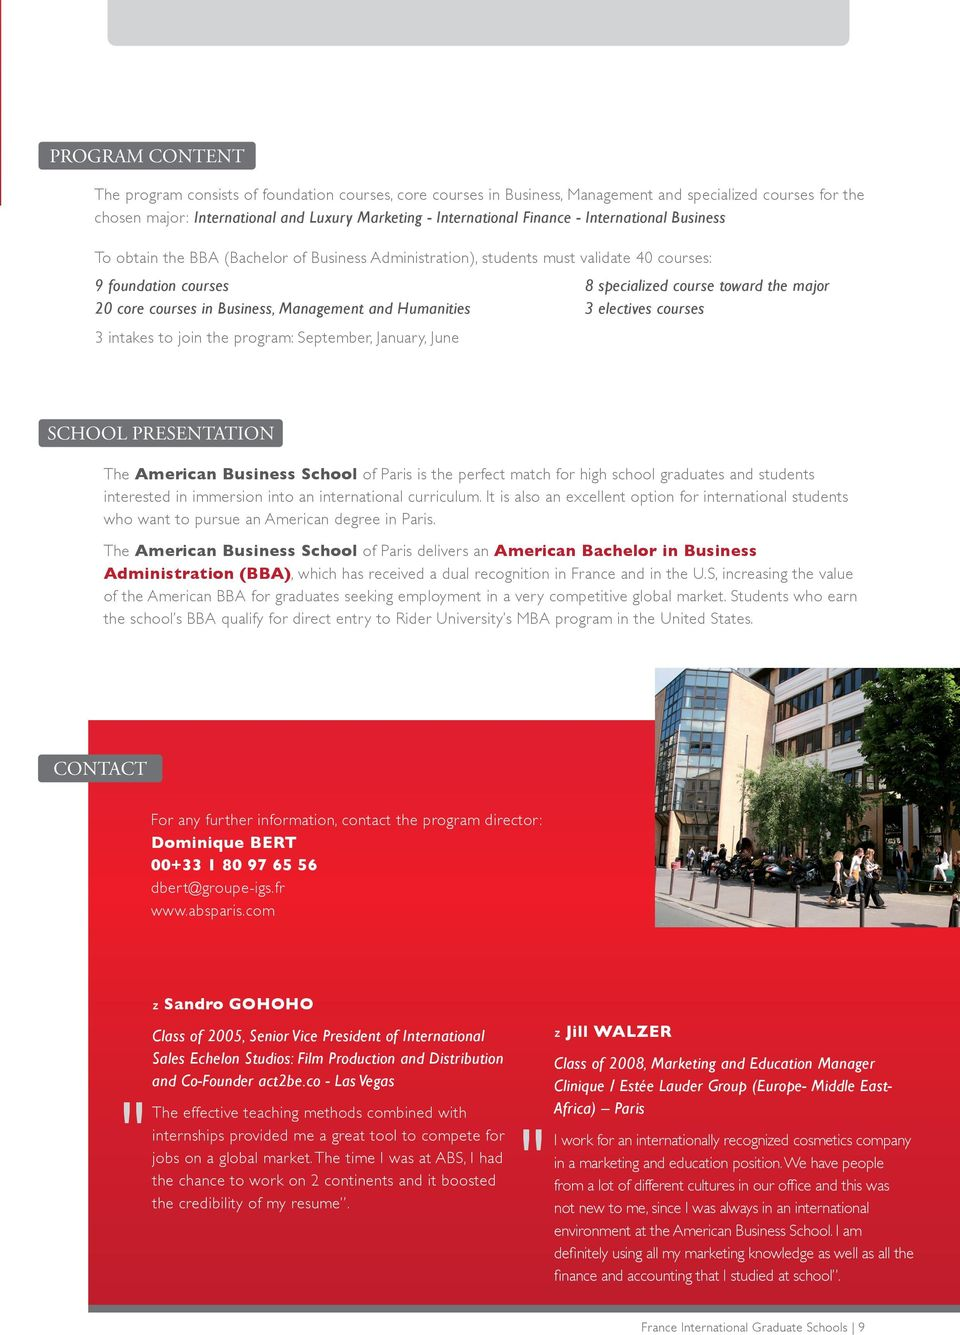 Humanities 3 intakes to join the program: September, January, June 8 specialized course toward the major 3 electives courses SCHOOL PRESENTATION The American Business School of Paris is the perfect